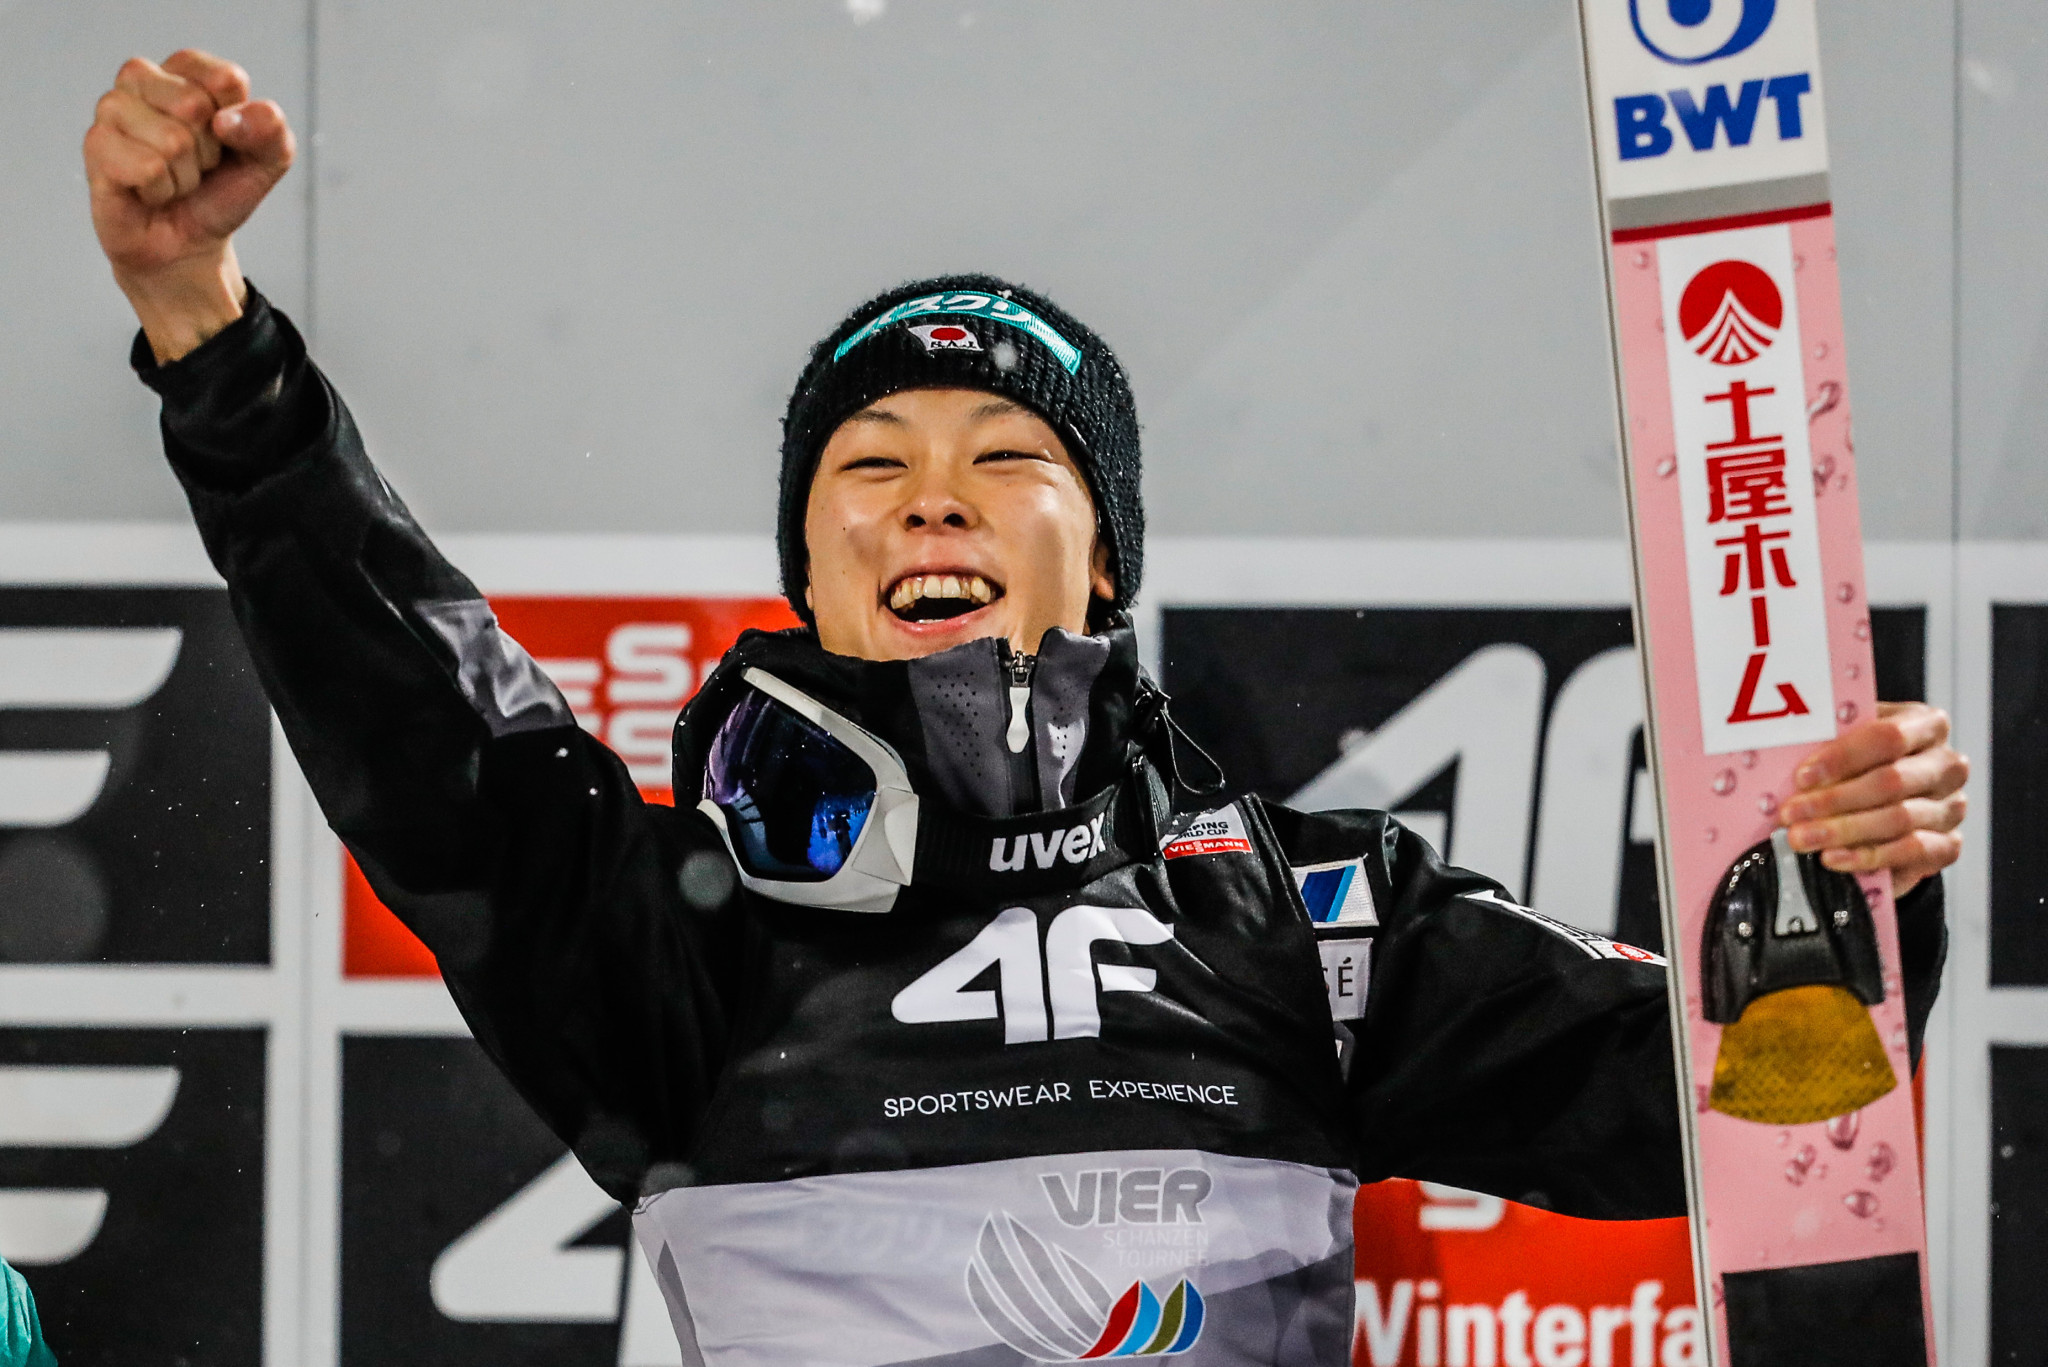 Japan's Ryoyu Kobayashi has become the fifth male ski jumper to win six consecutive FIS Ski Jumping World Cup events ©Getty Images